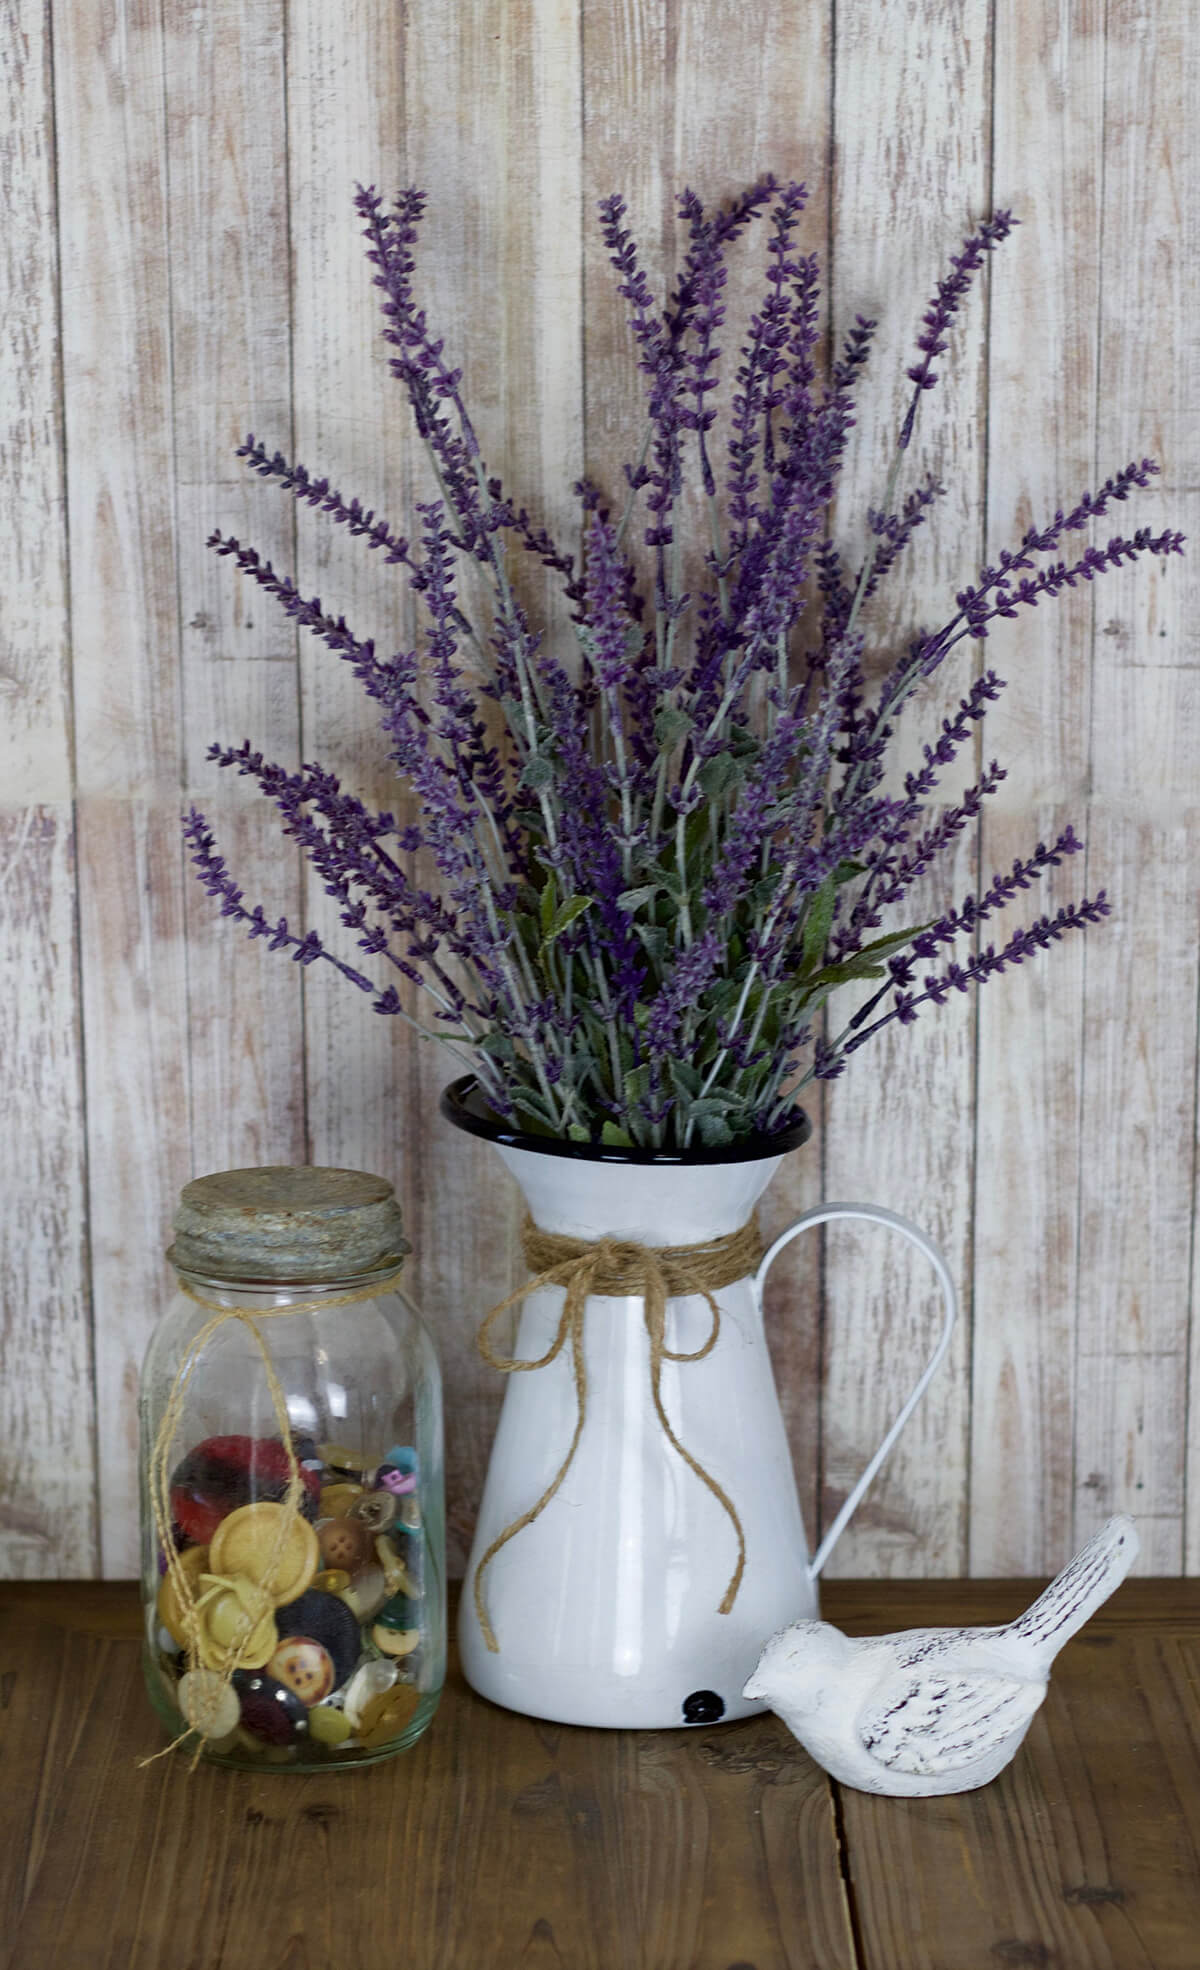 Farmhouse Style Pitcher with Lavender